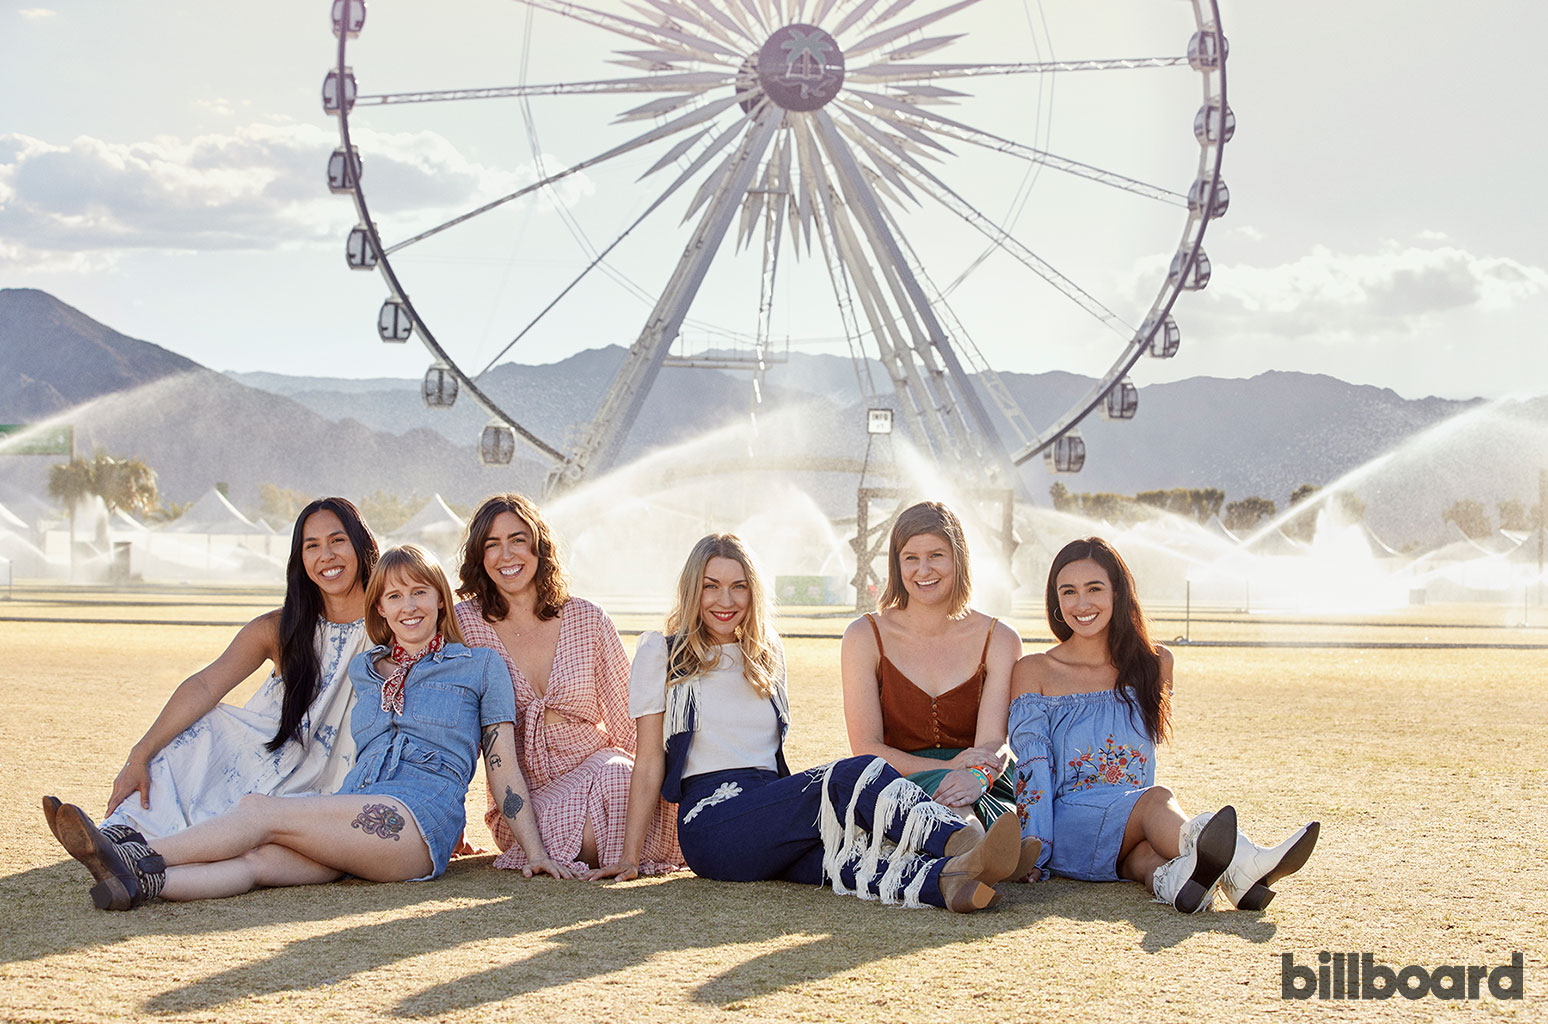 """My whole Stagecoach [leadership] team is women in charge,"" says Vee, who was photographed with her team on April 23, 2019 at the Stagecoach festival in Indio, Calif. From left: Mapi Moran, Amanda Gray, Lindsay Lyons, Vee, Shea Kopp and Sabrina Sarmiento.  Sami Drasin"